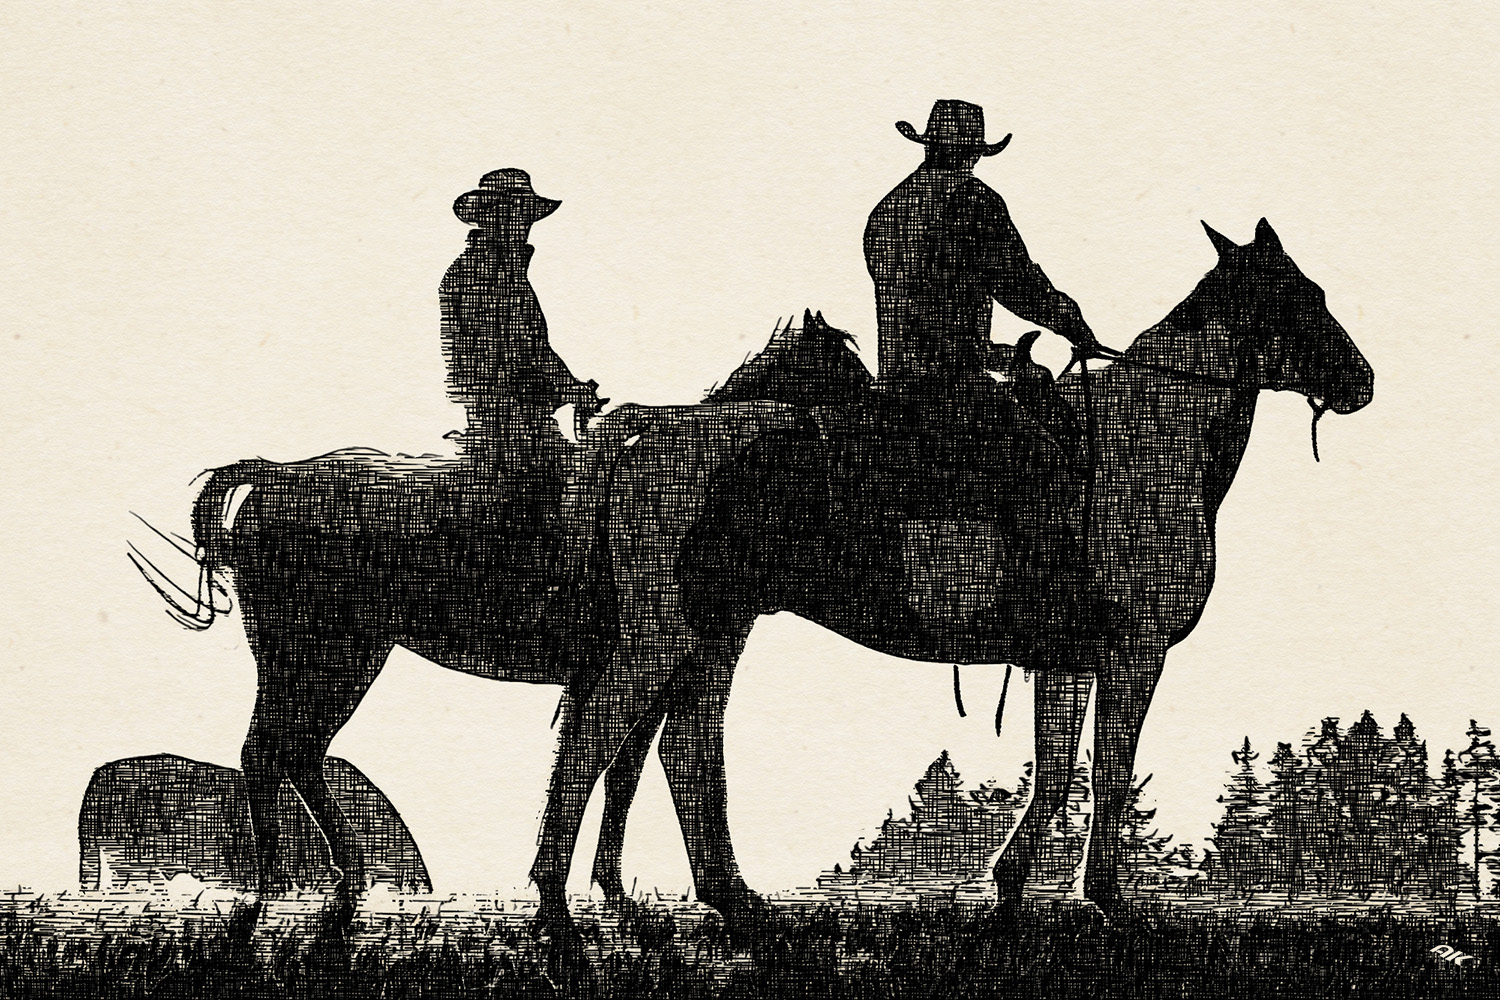 Two cowboys riding on horseback in a Prairie landscape at sunset.